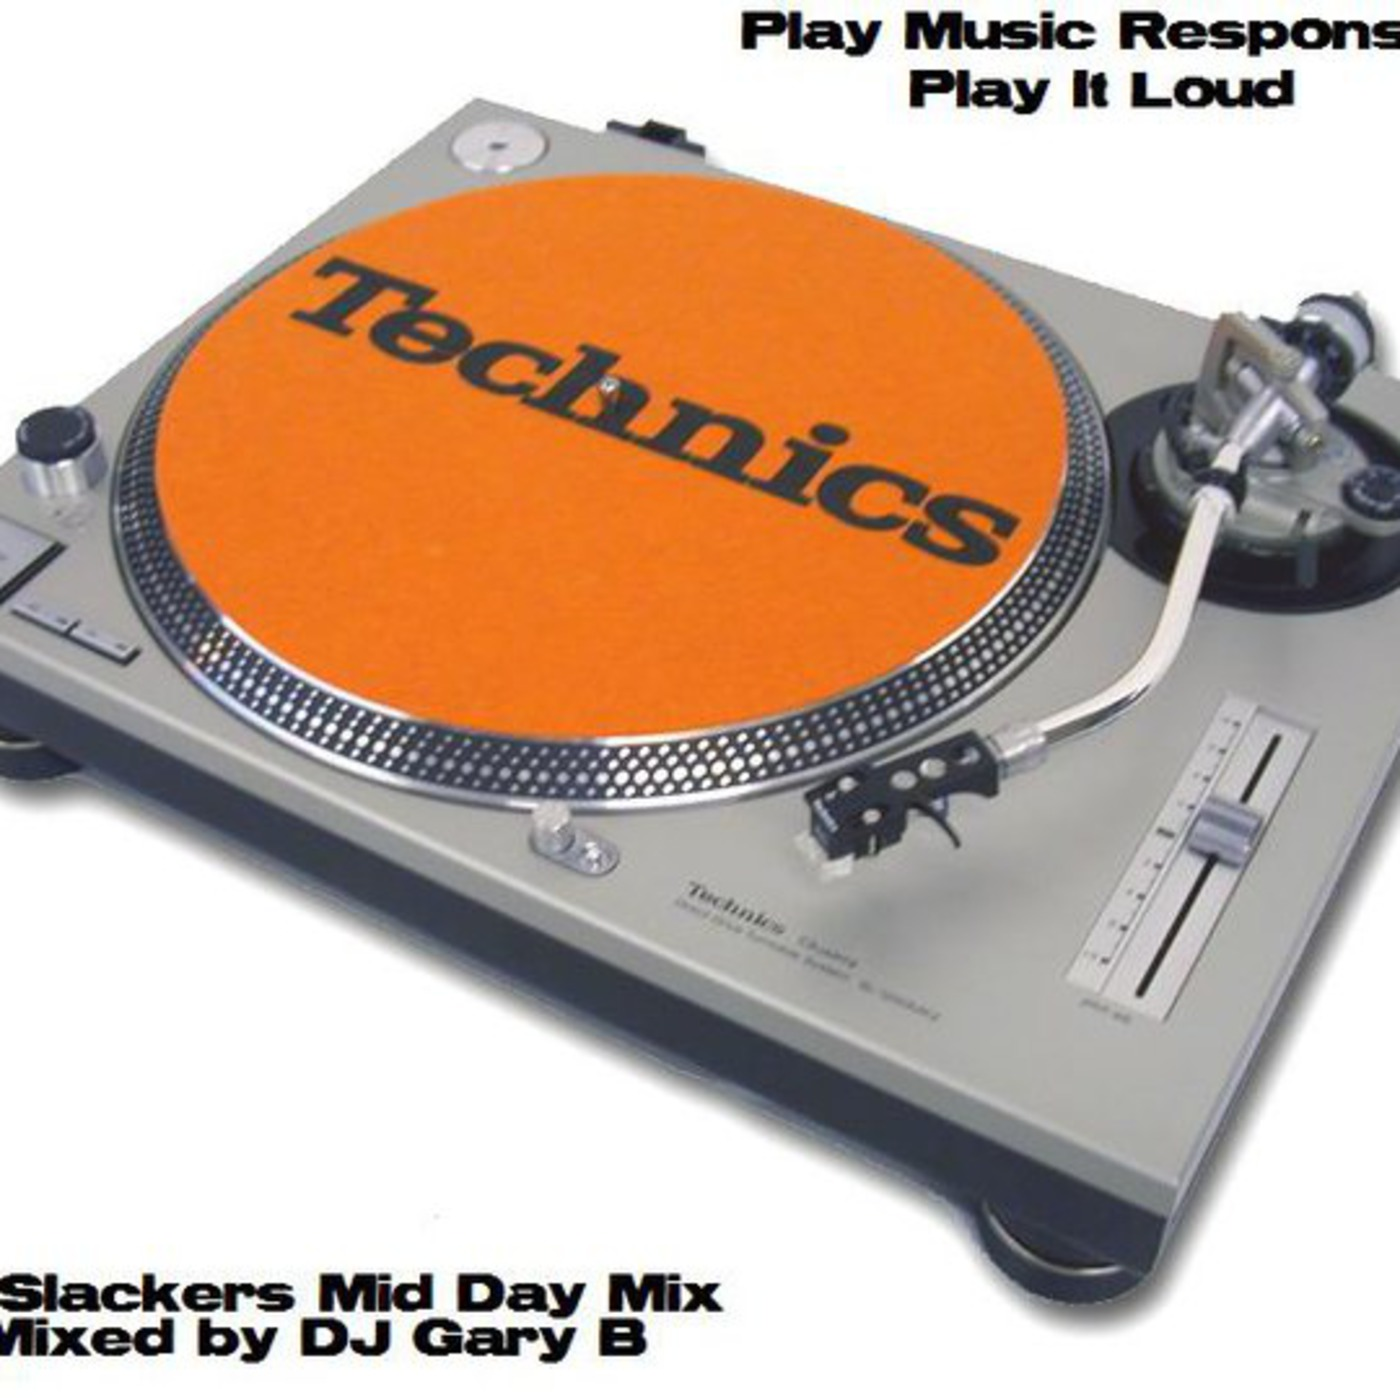 Da Slackers Mid Day Mix with DJ Gary B